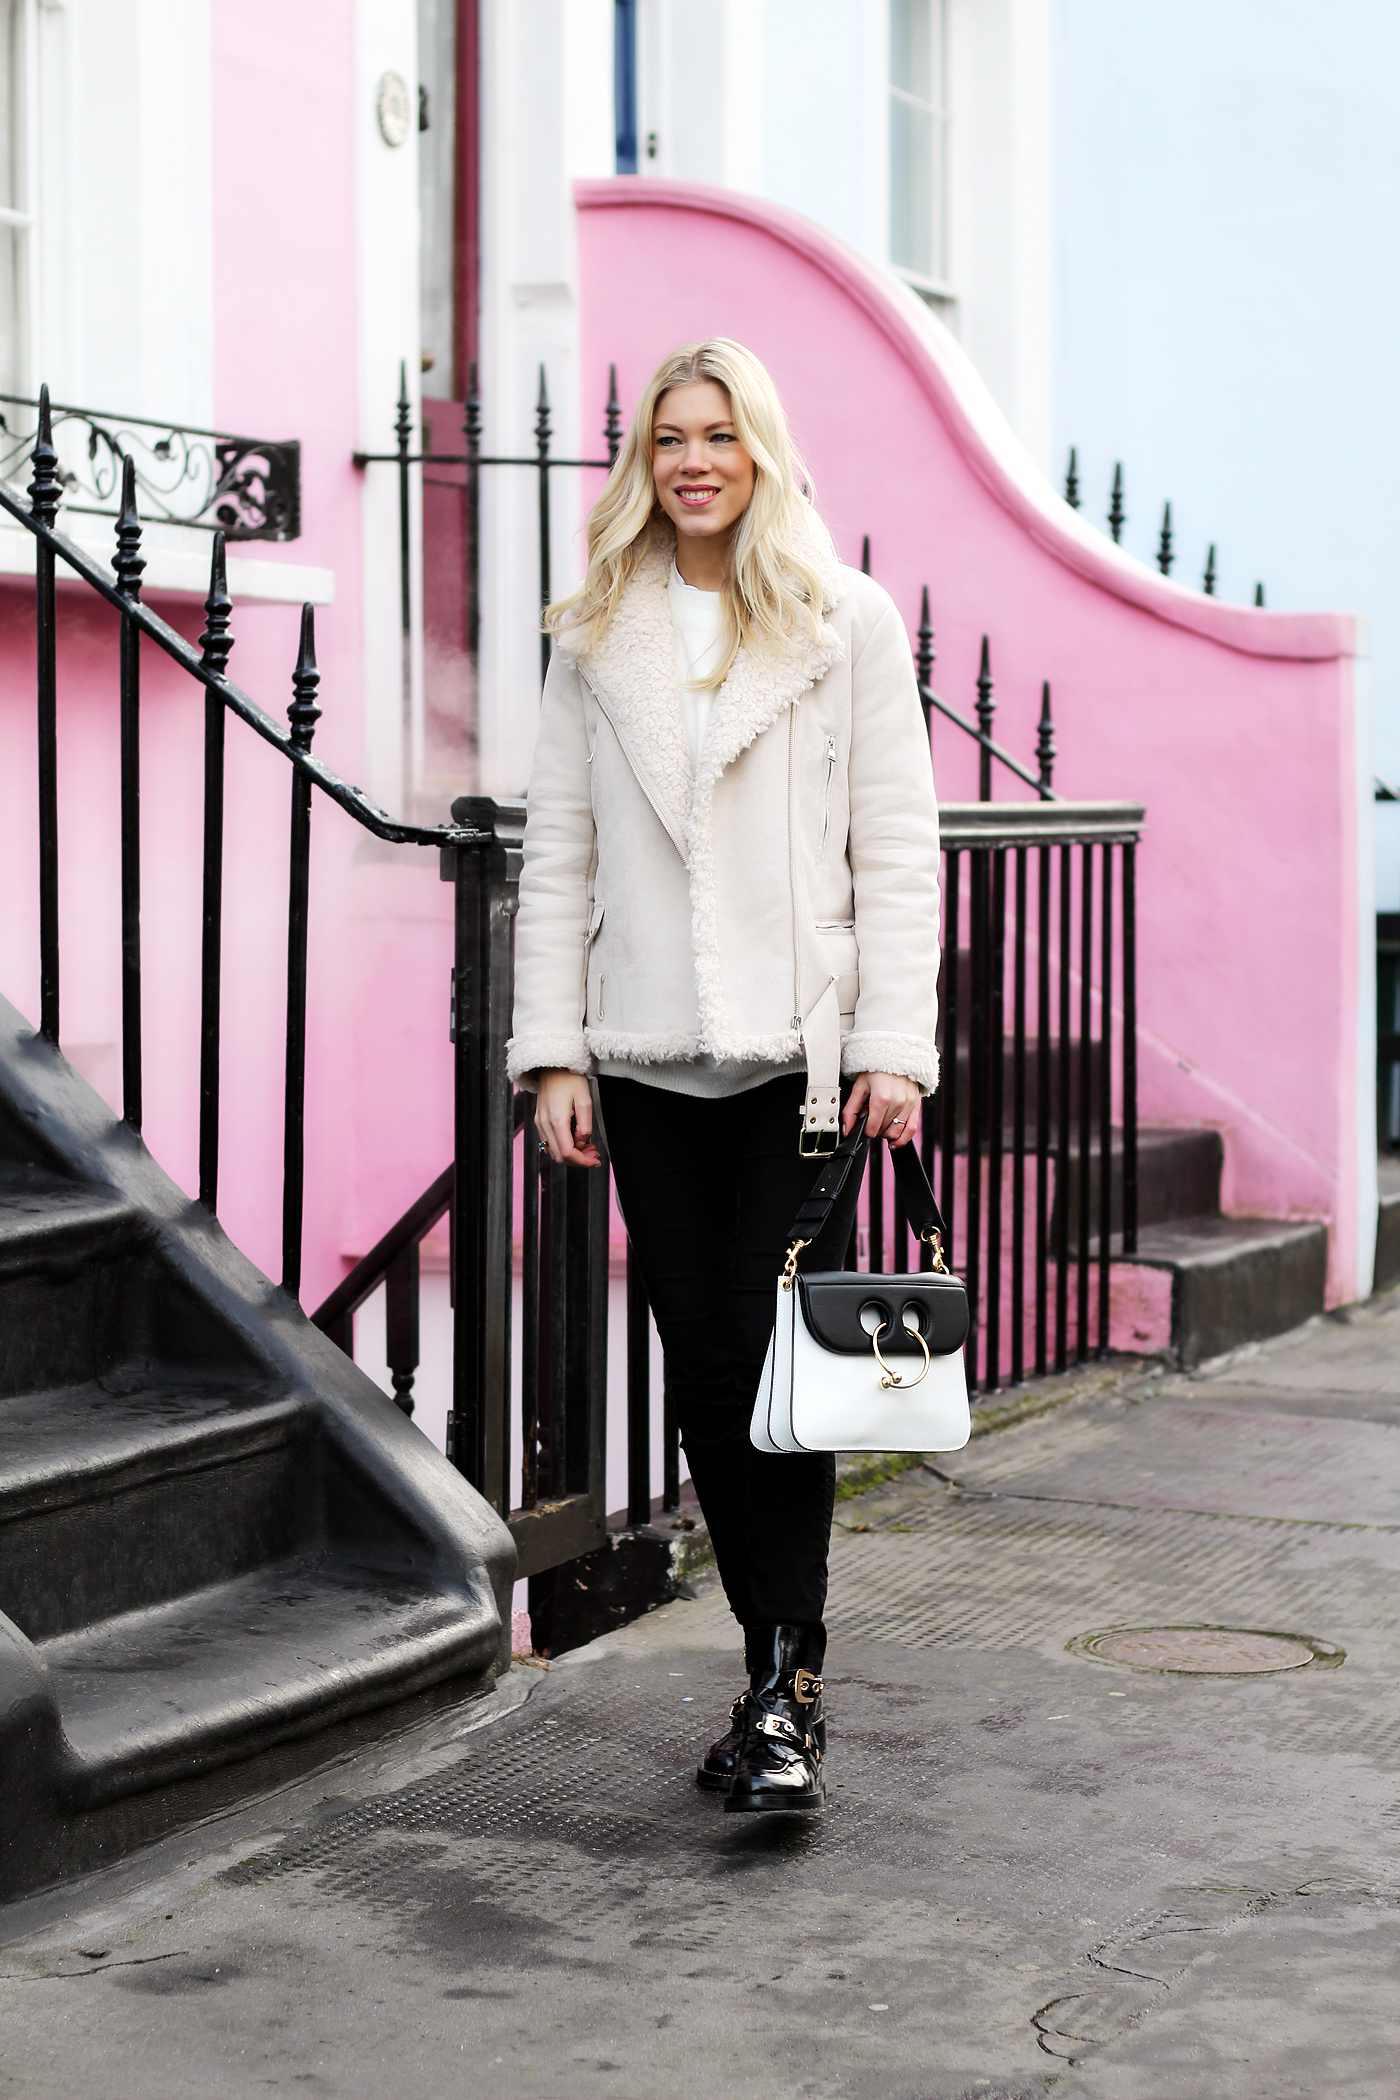 somehappyshoes_London_Zara_Biker_jacket_Piercebag1